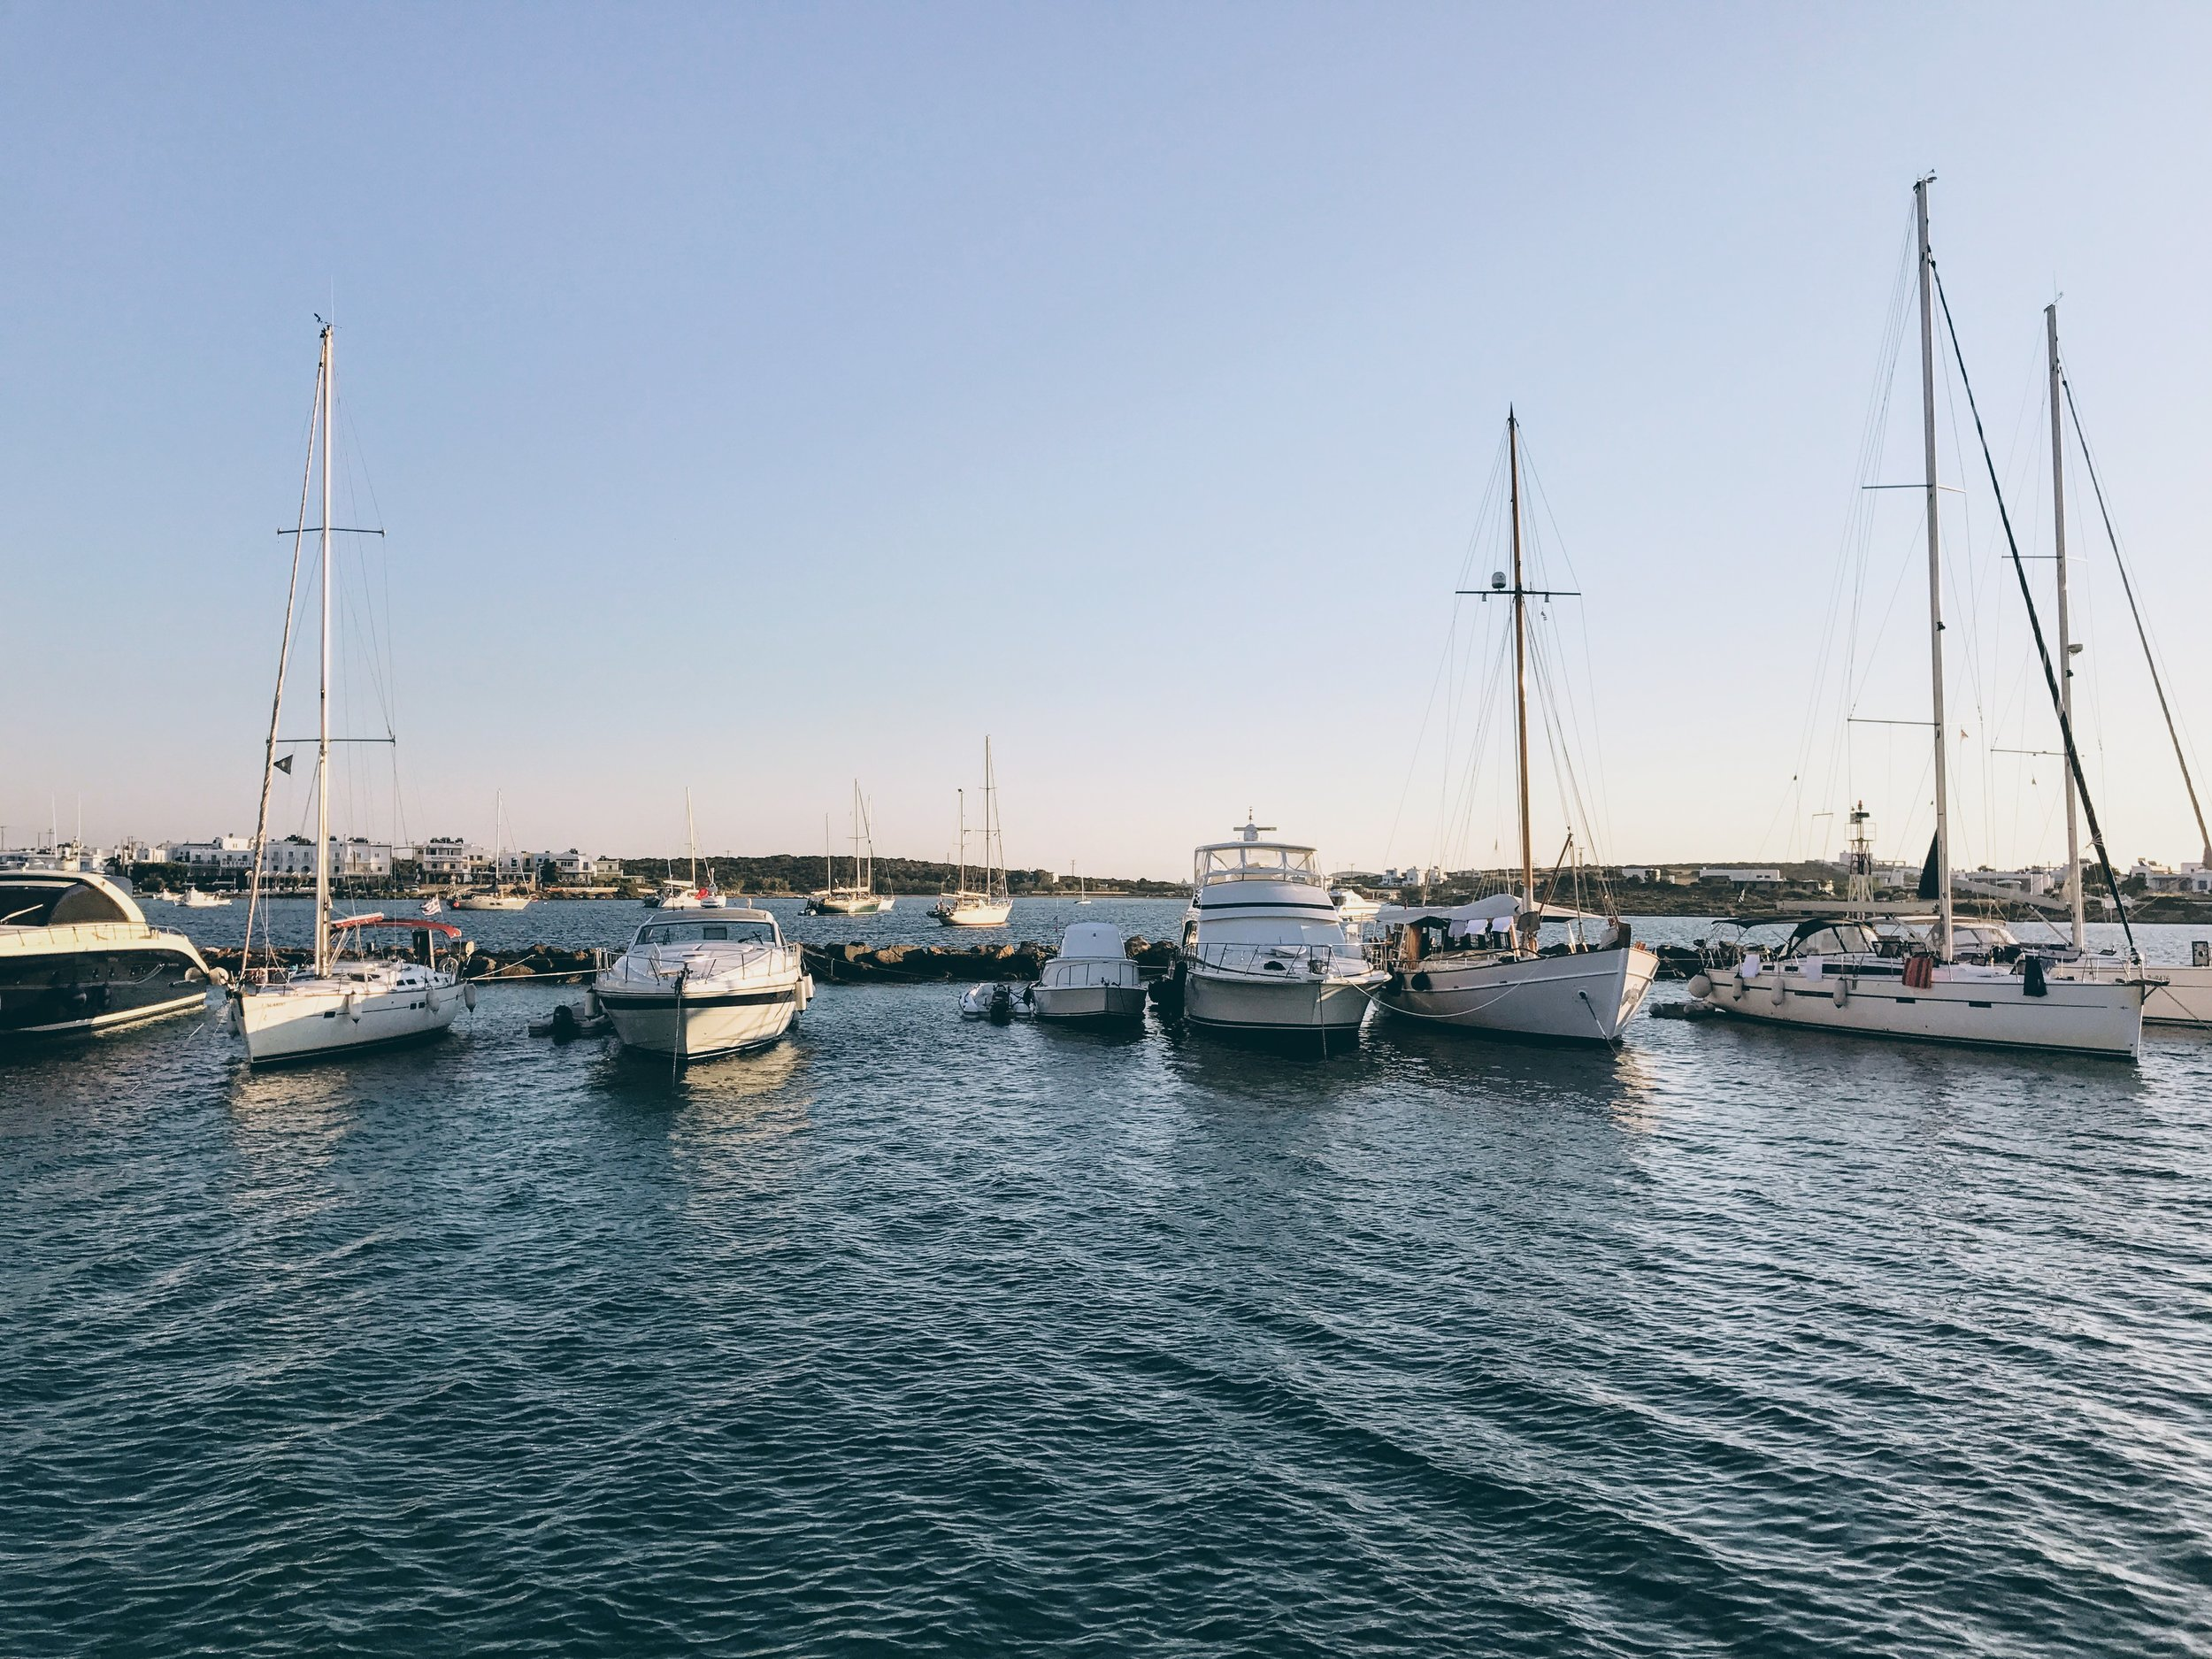 Sailing boats by the port